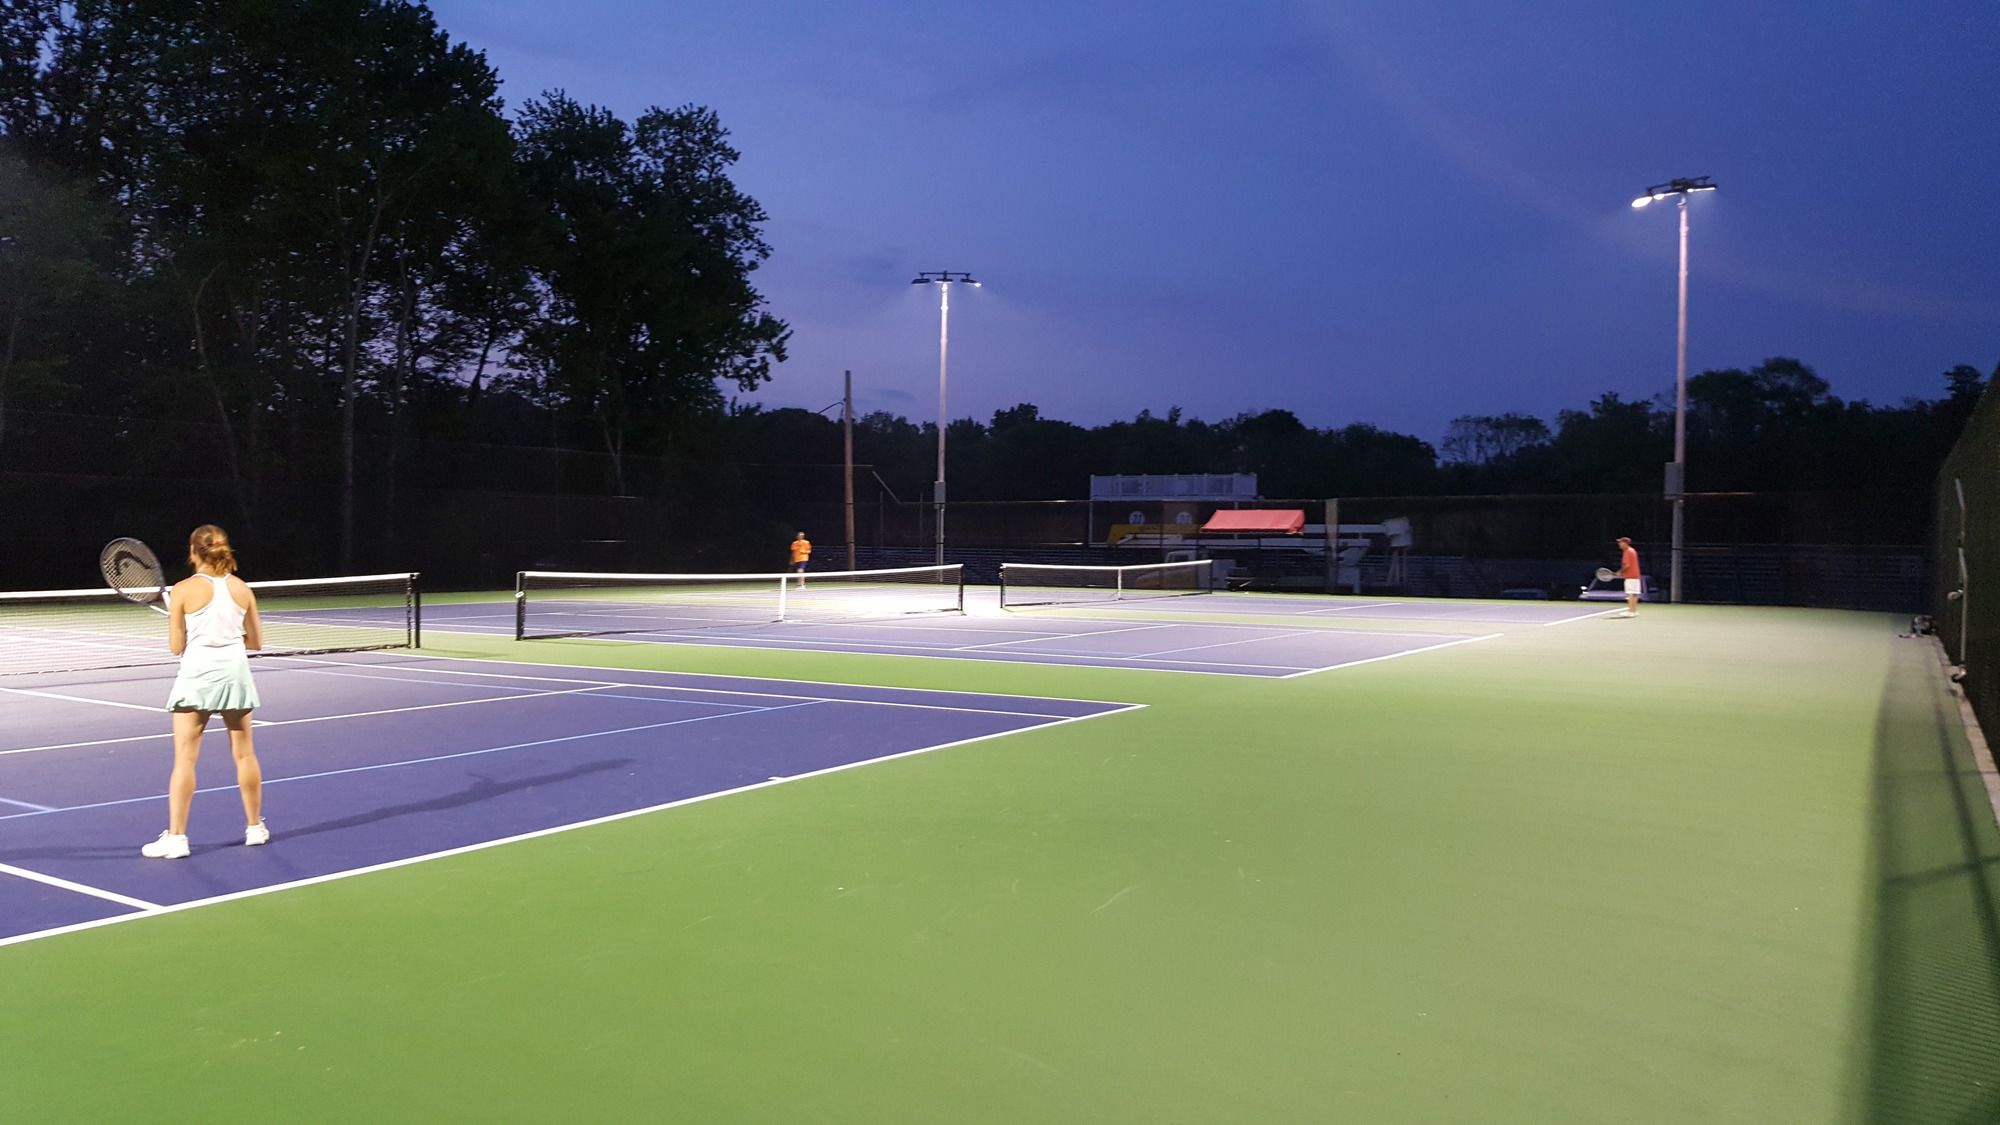 City Serves Up A New Tennis Court Public Works Magazine Grounds Parks And Roadside